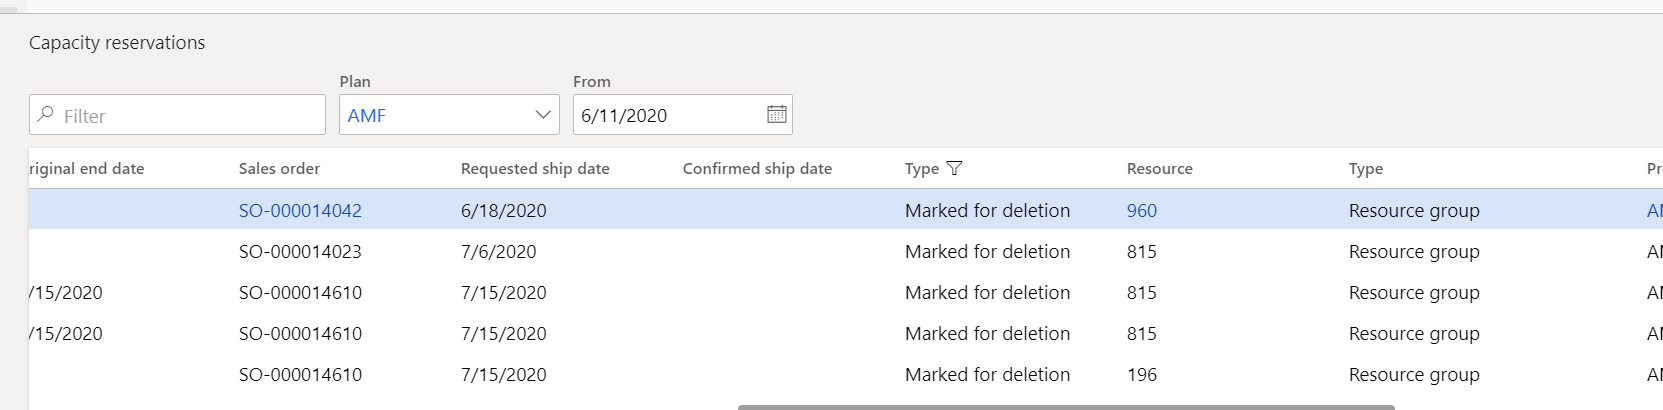 deleting marked for deletion records